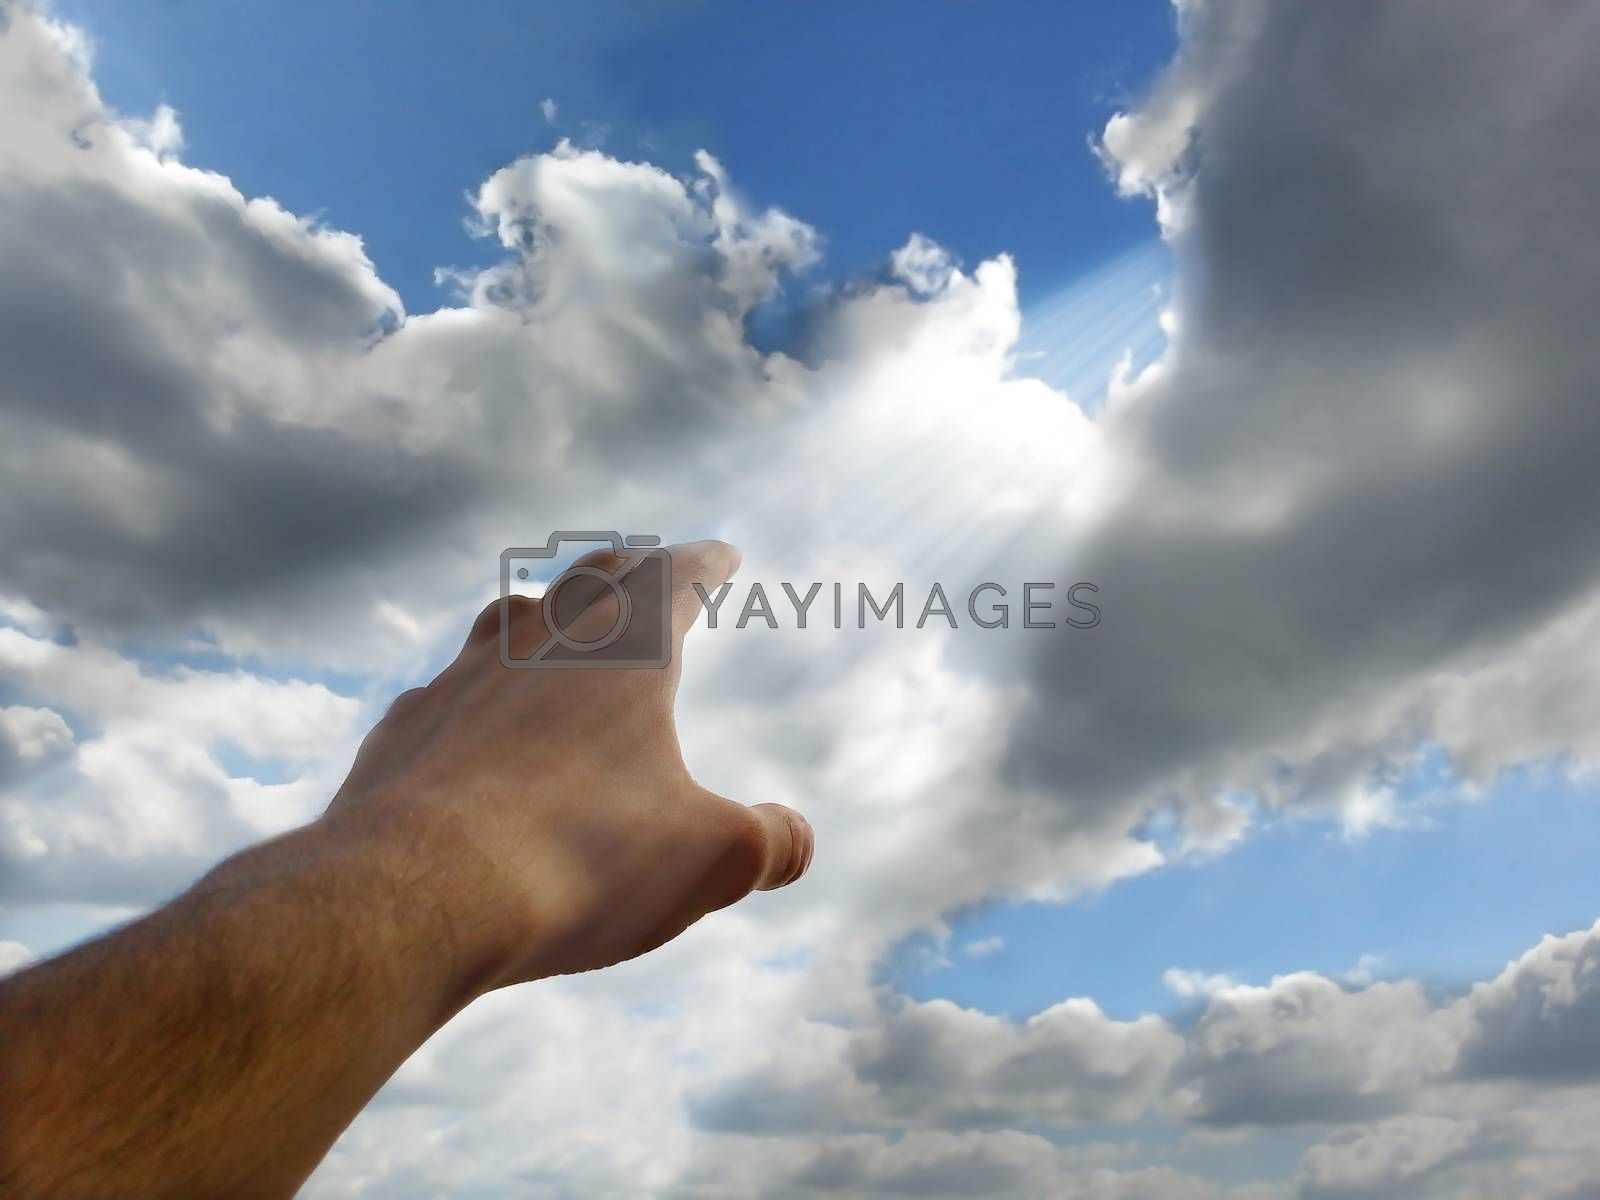 Royalty free image of Hand reaching for the sky by fjanecic